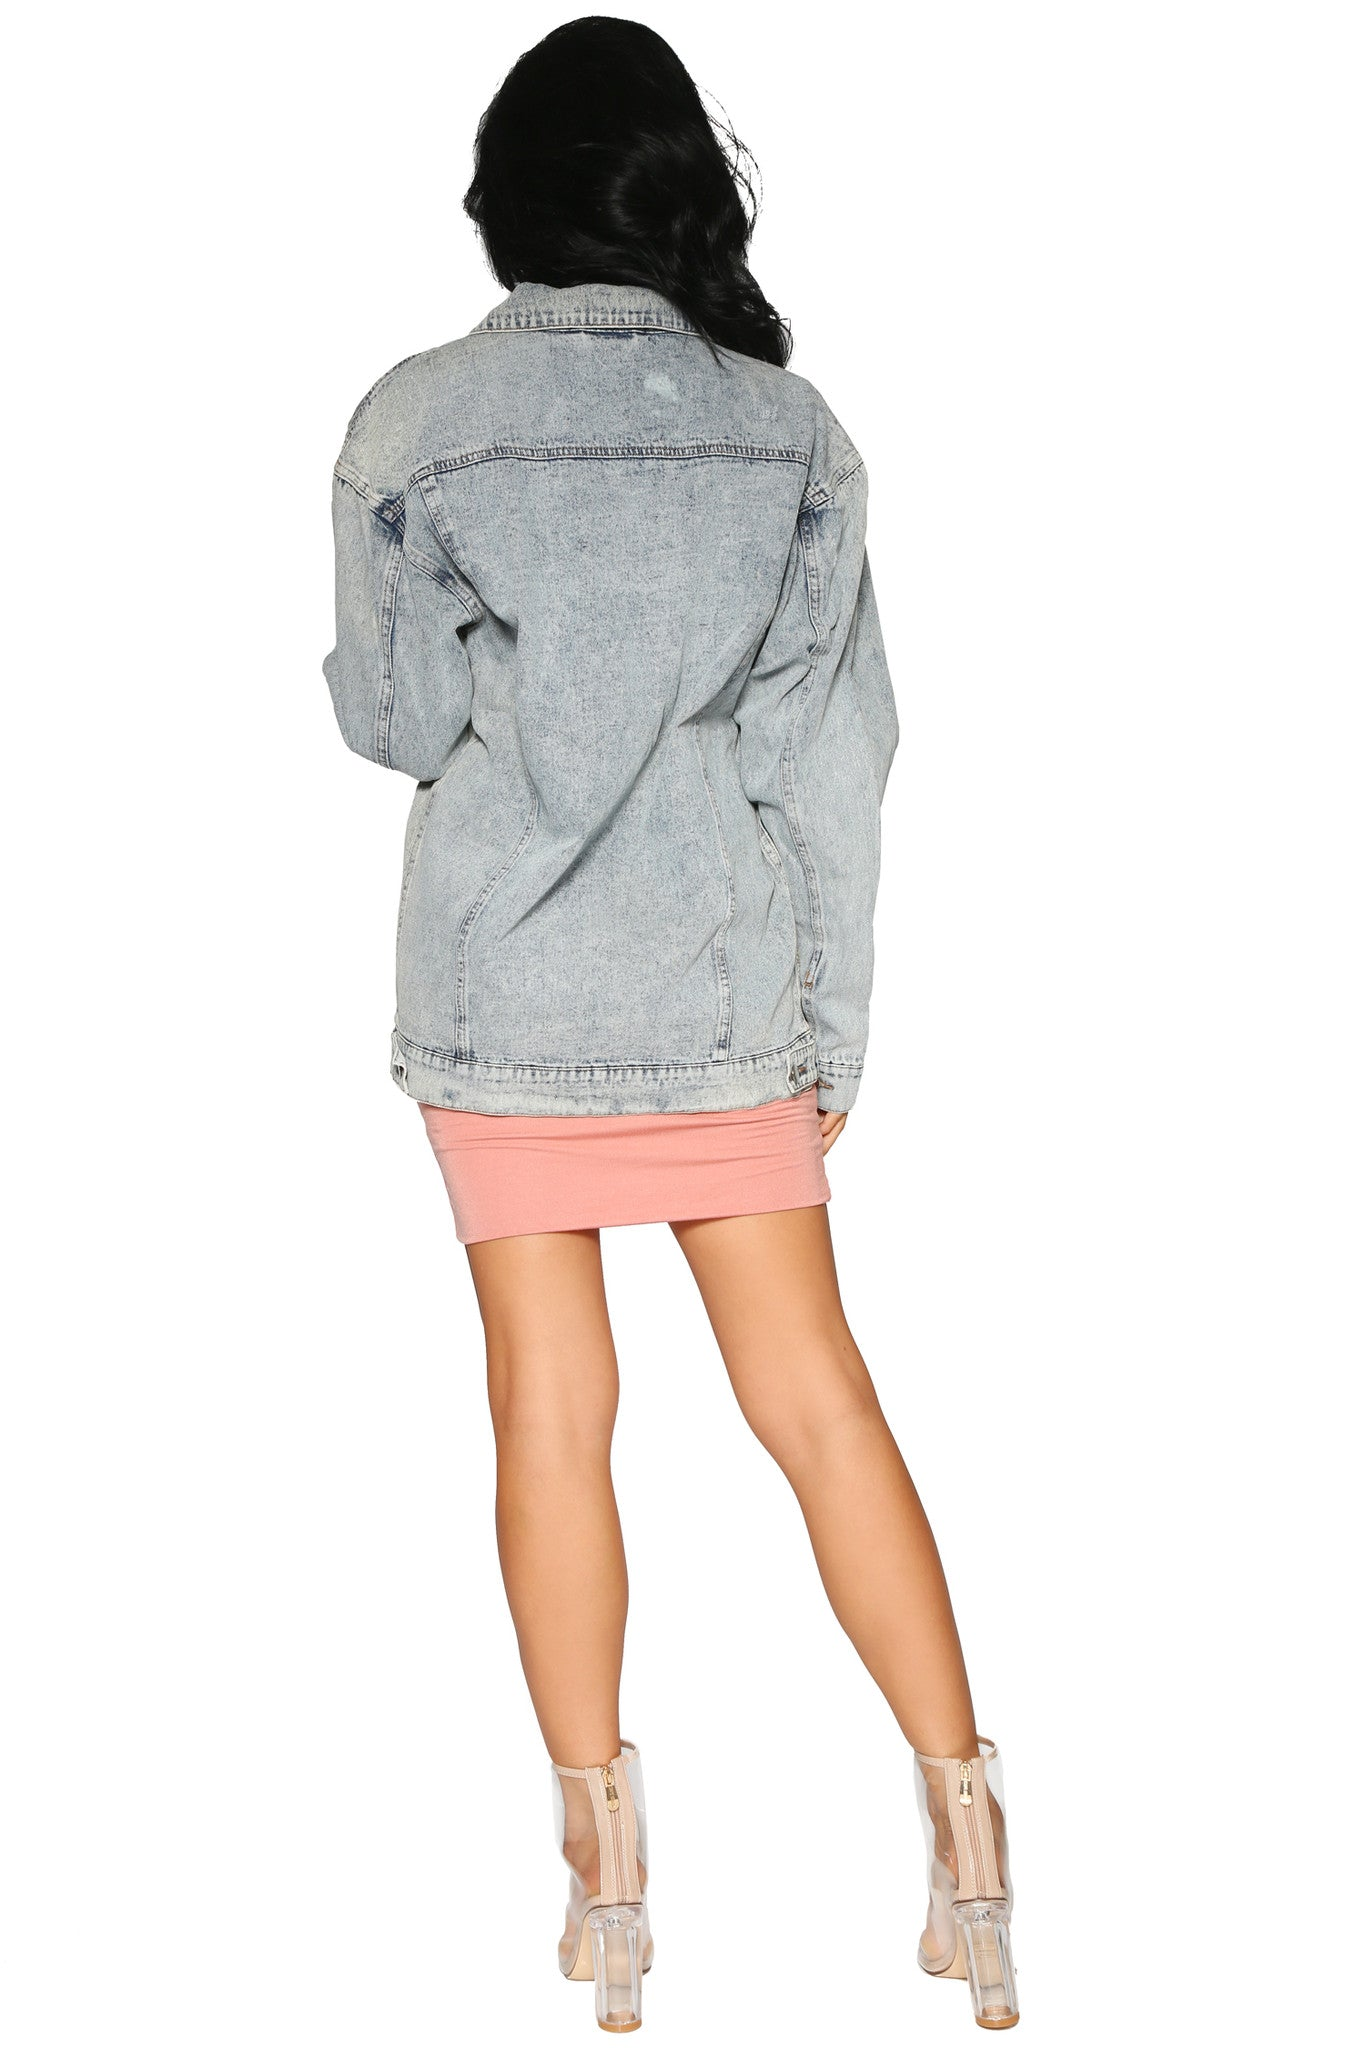 CLEO OVERSIZED DENIM JACKET - Glam Envy - 3